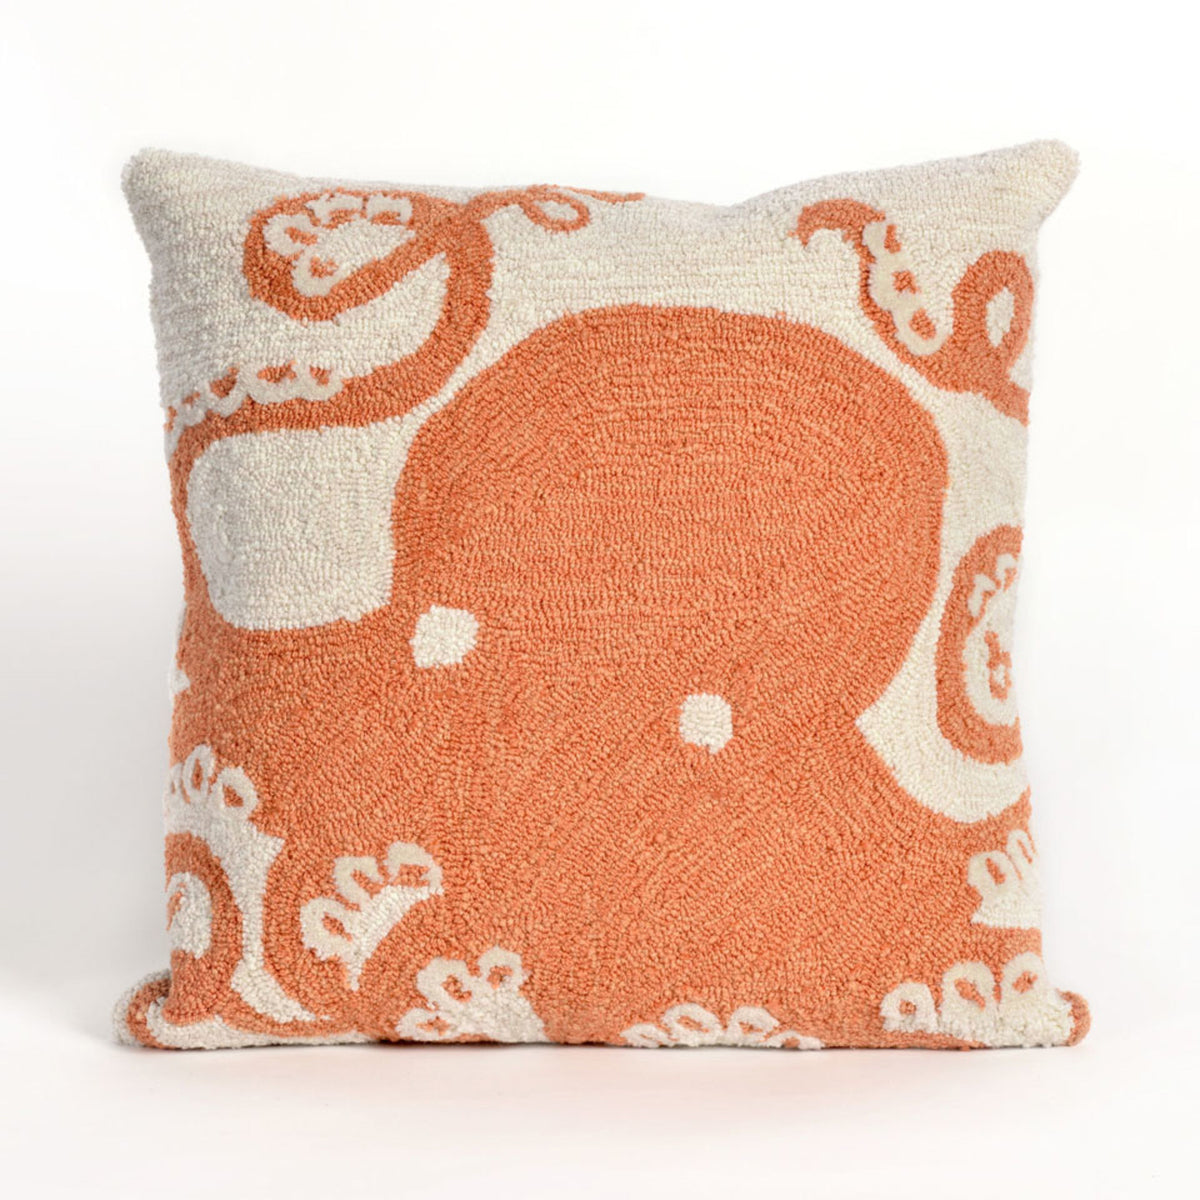 Frontporch Octopus Coral Pillows